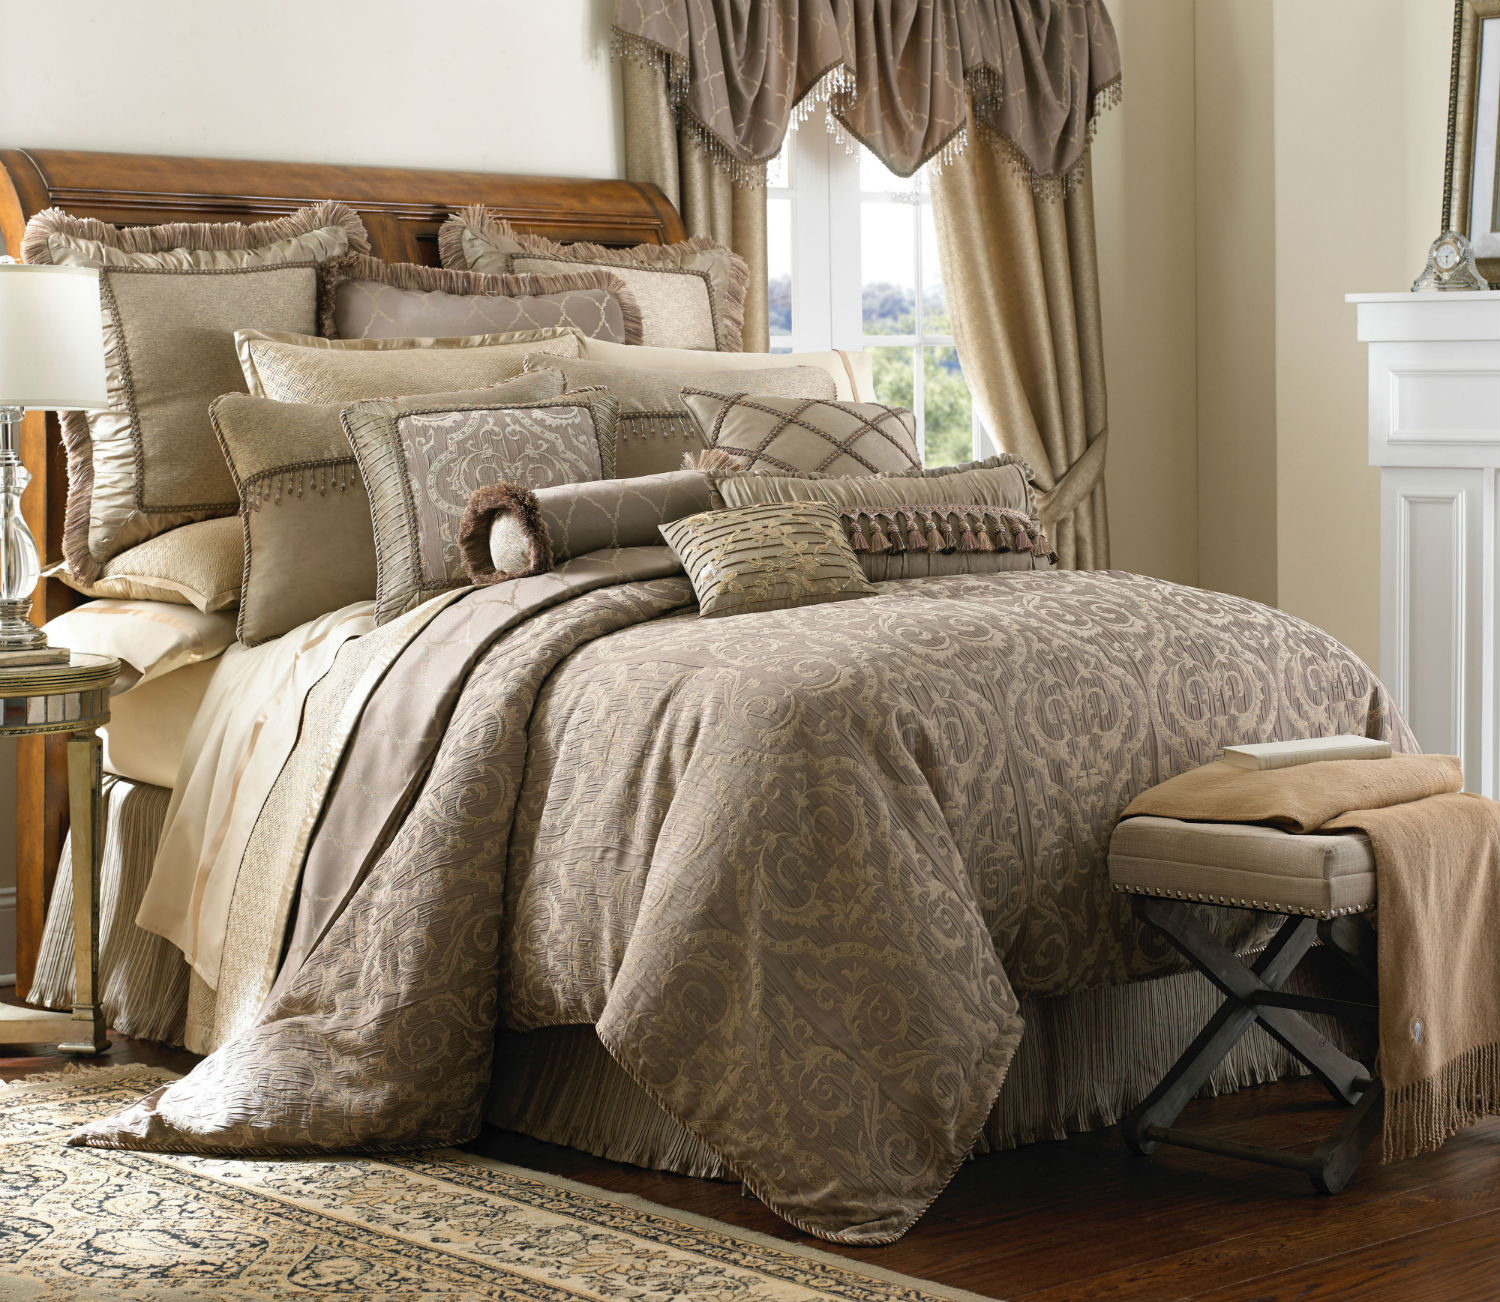 Hazeldene by waterford luxury bedding beddingsuperstore com